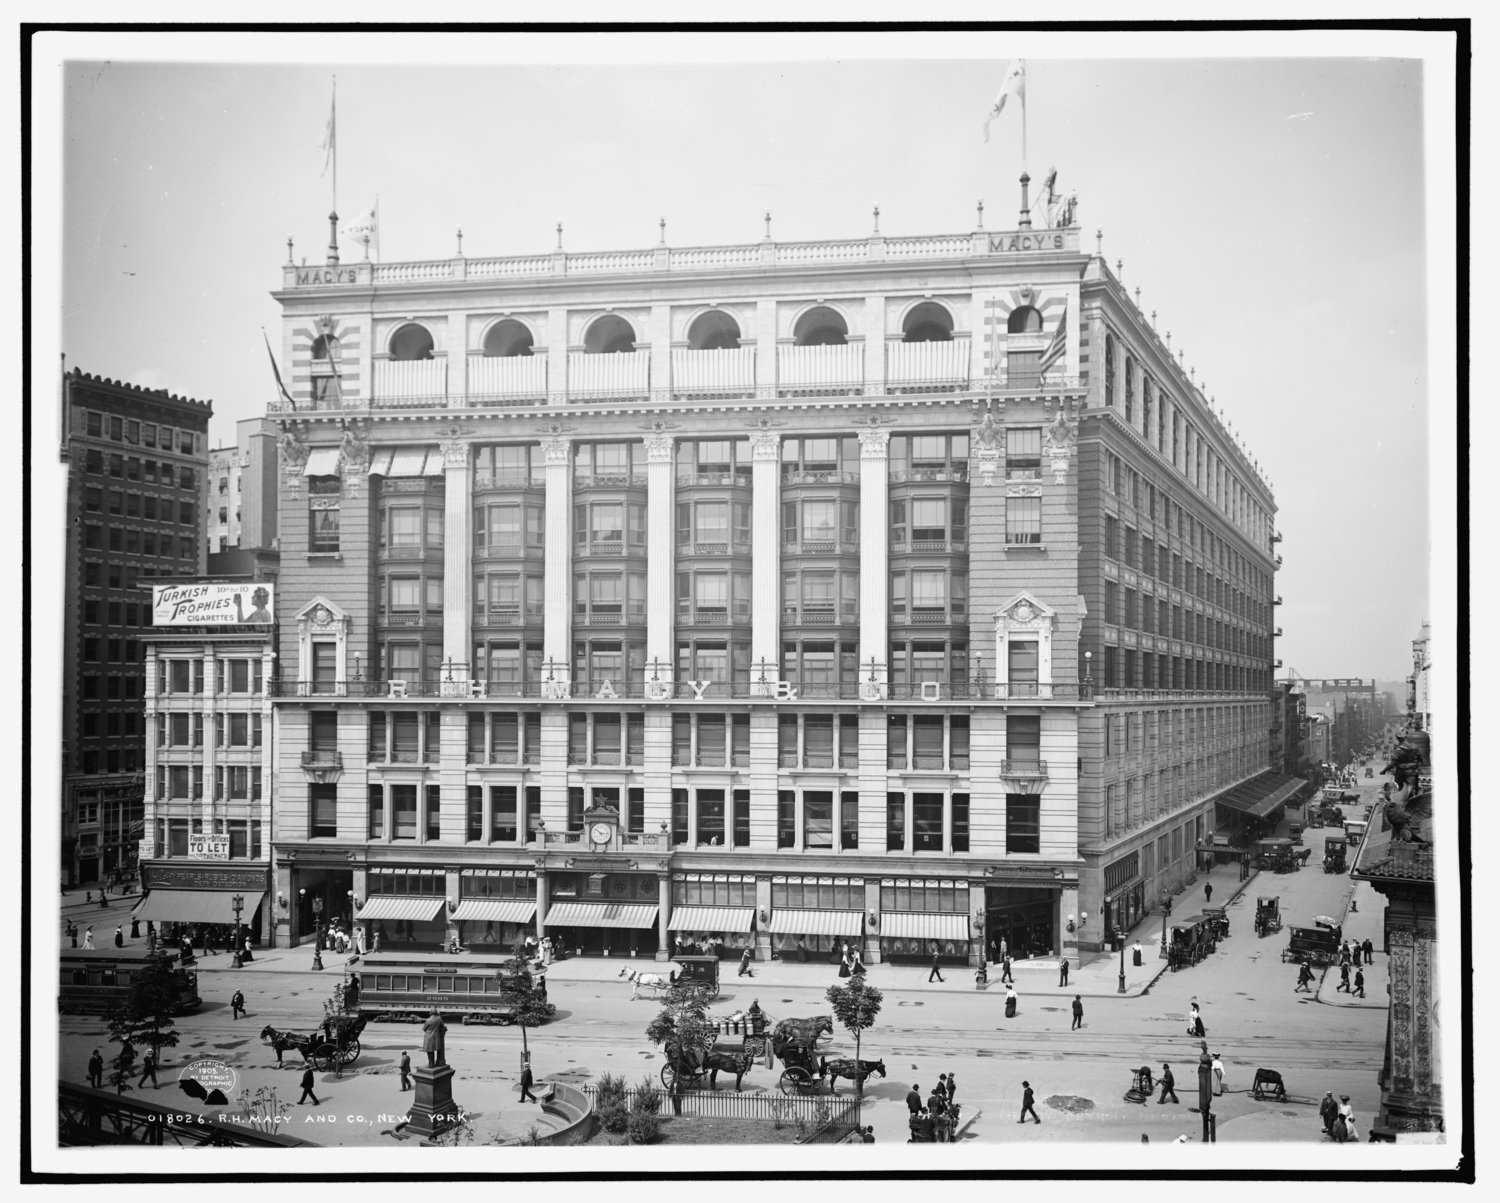 R.H. Macy and Co., New York, ca. 1905